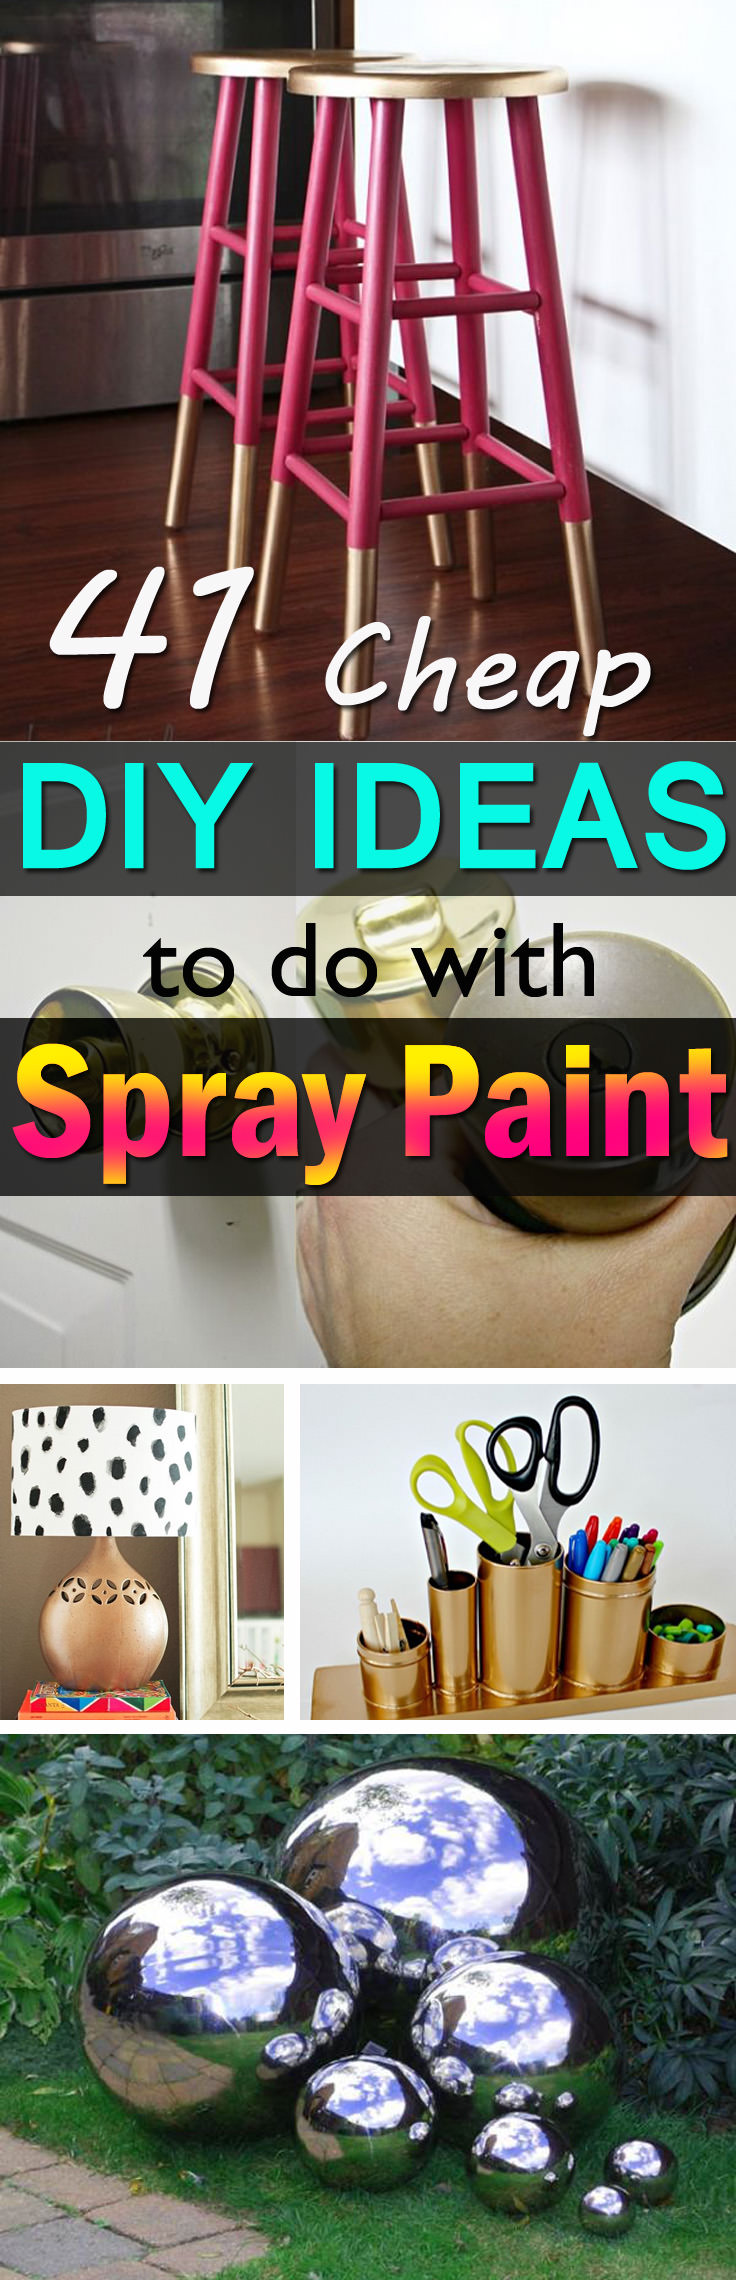 Spray Painting Ideas Part - 37: Spray Painting Is An Apt And Easy Way To Give A Fresh And Magical Makeover  To The Old Items You Have. Check Out These 41 DIY Spray Paint Ideas To  Inspire ...